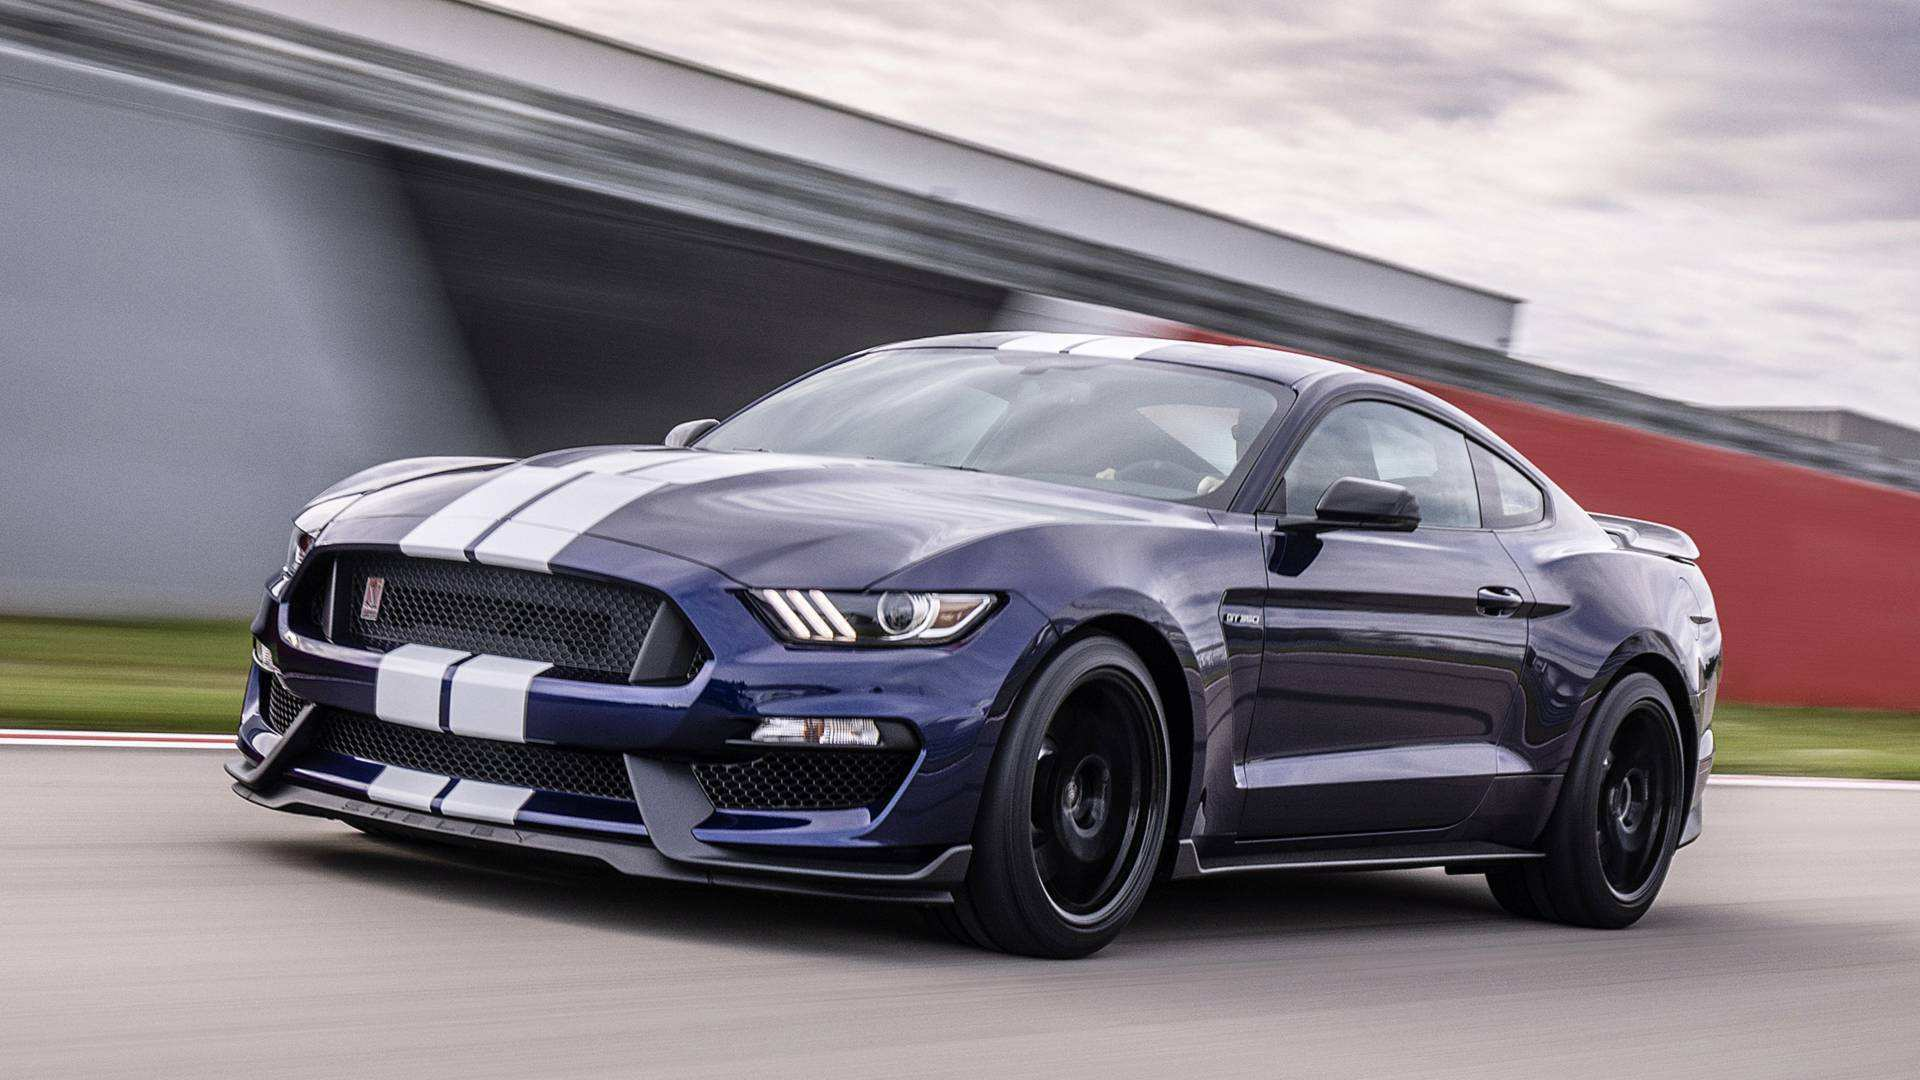 22 Gallery of 2019 Ford Mustang Gt350 Style for 2019 Ford Mustang Gt350